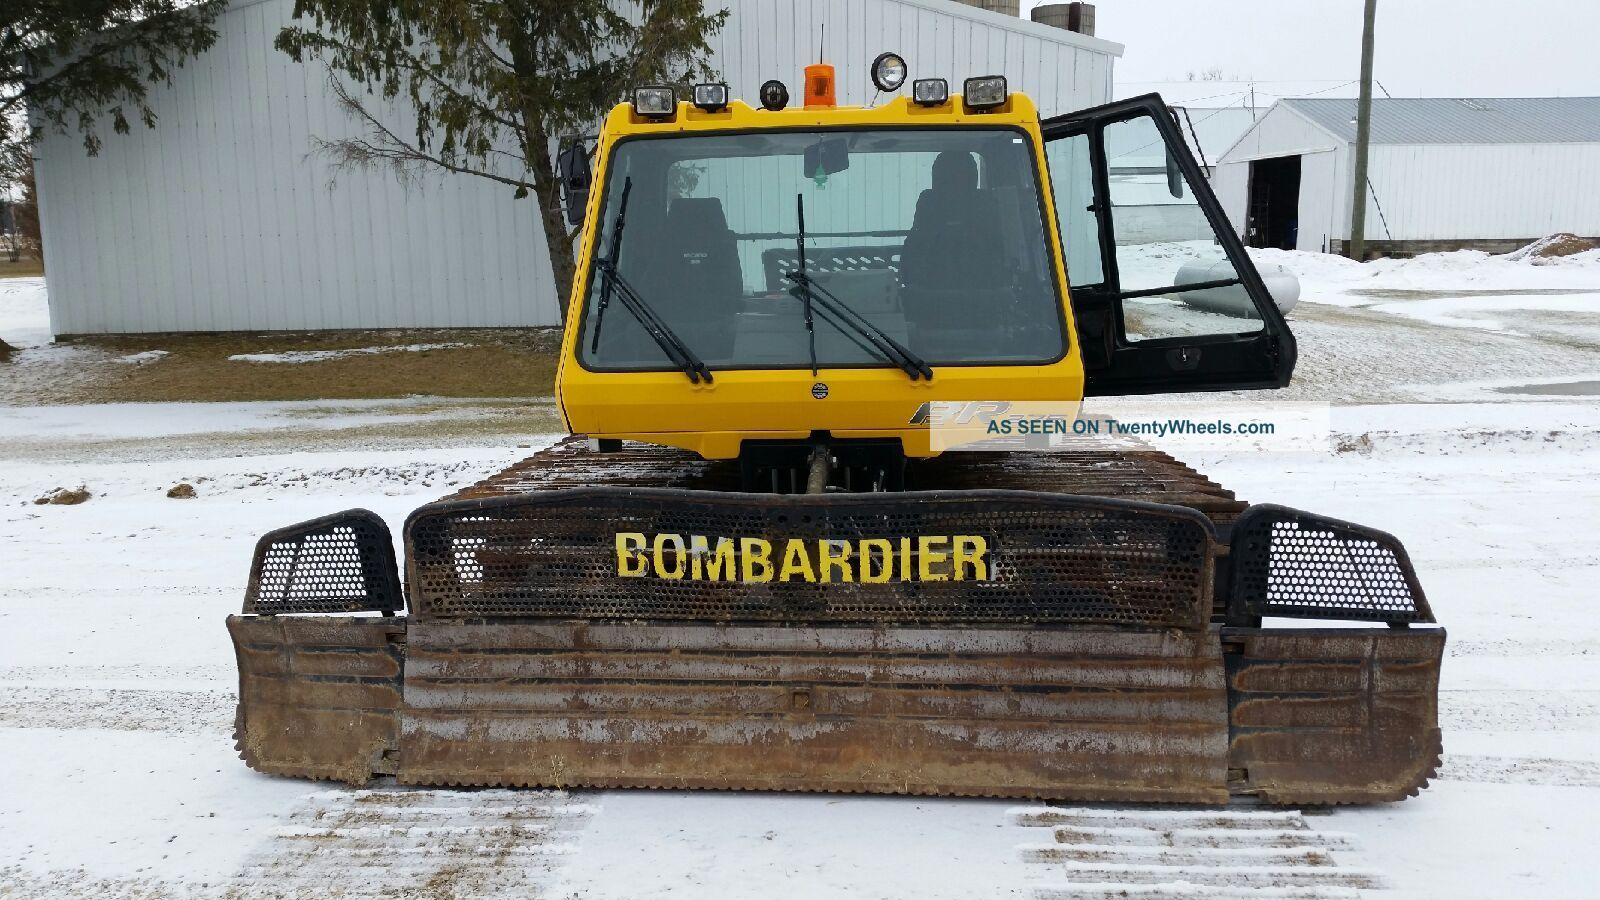 Bombardier Snowcat Br275 12 Foot Machine 2001 Other photo